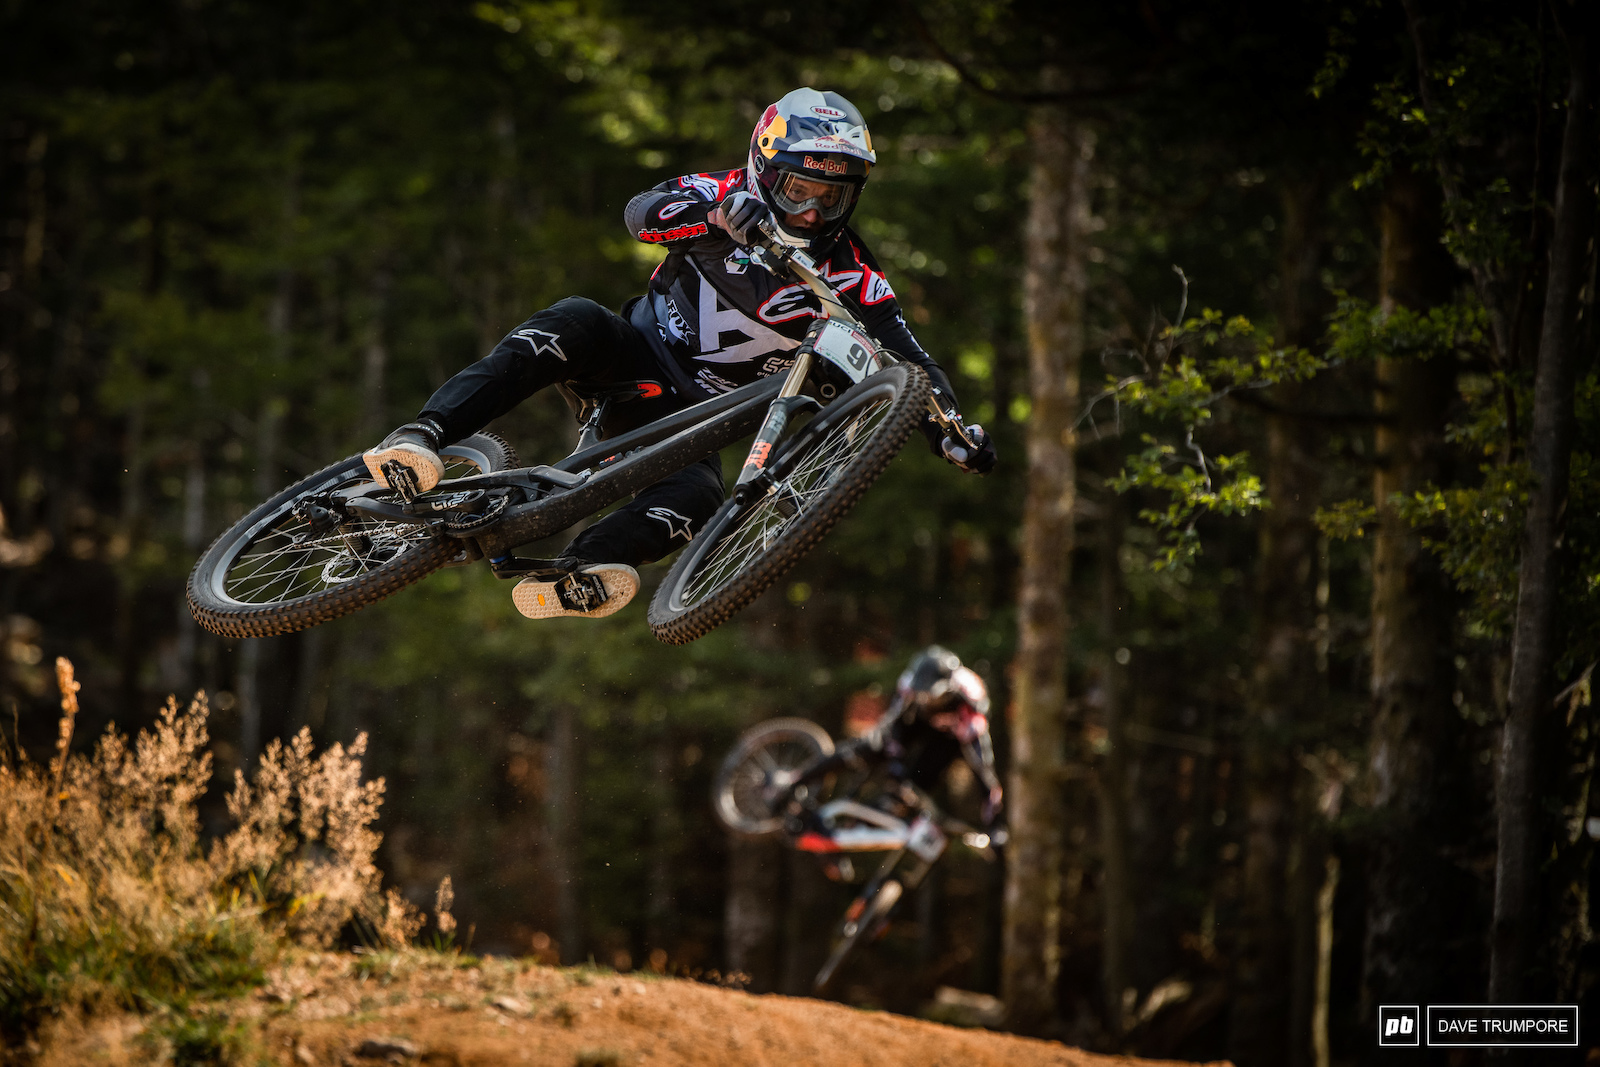 Aaron Gwin scrubs one jump and his teammate Angel Suarez whips another off in the distance.